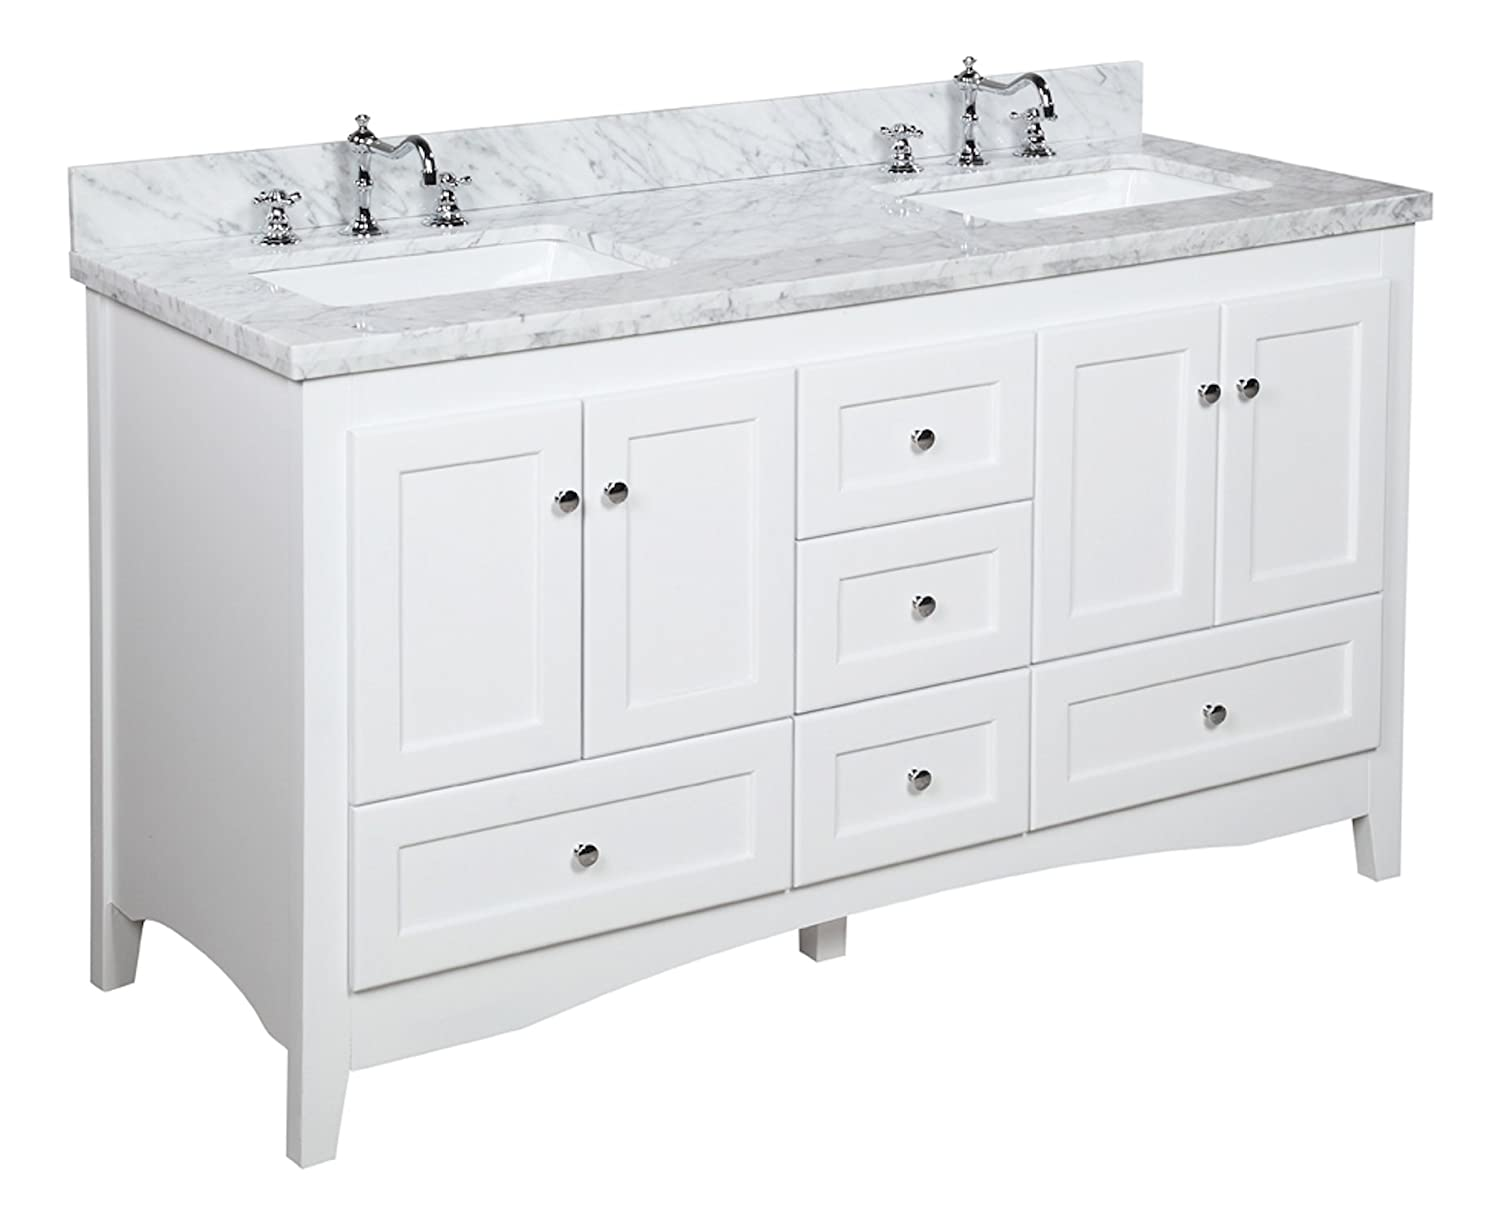 double sink vanity white.  Abbey 60 Double Bathroom Vanity Carrara White Amazon com